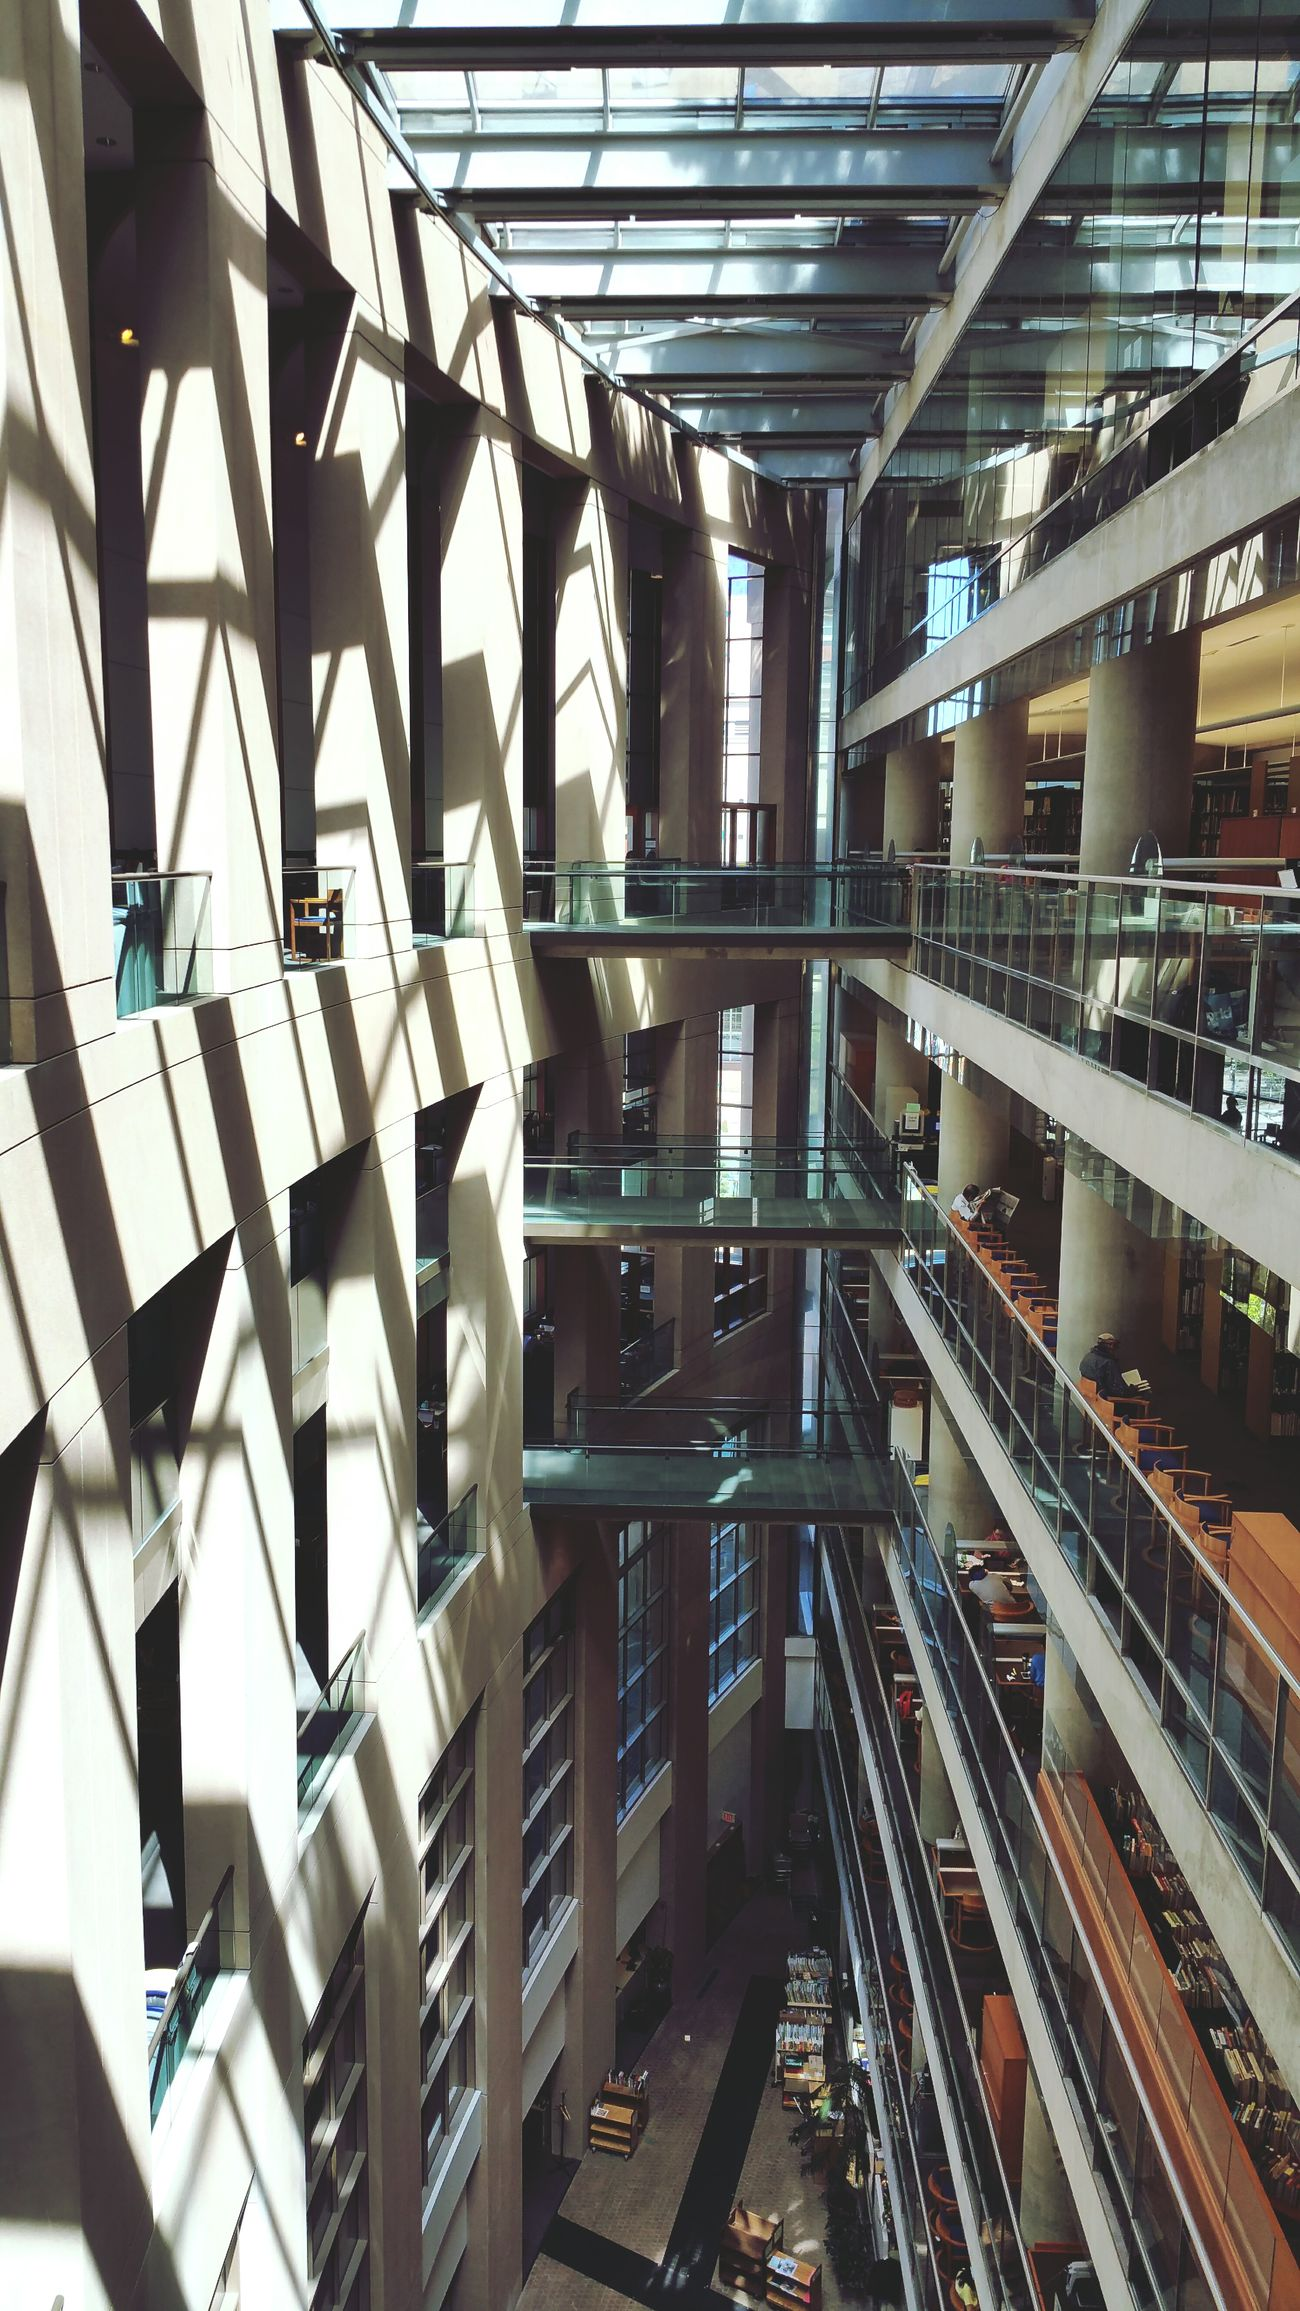 Studying can be pleasant too! Checking Out Books Library Architecture Shadows Building Urban Geometry Design Urban Architecture Studying Old Buildings